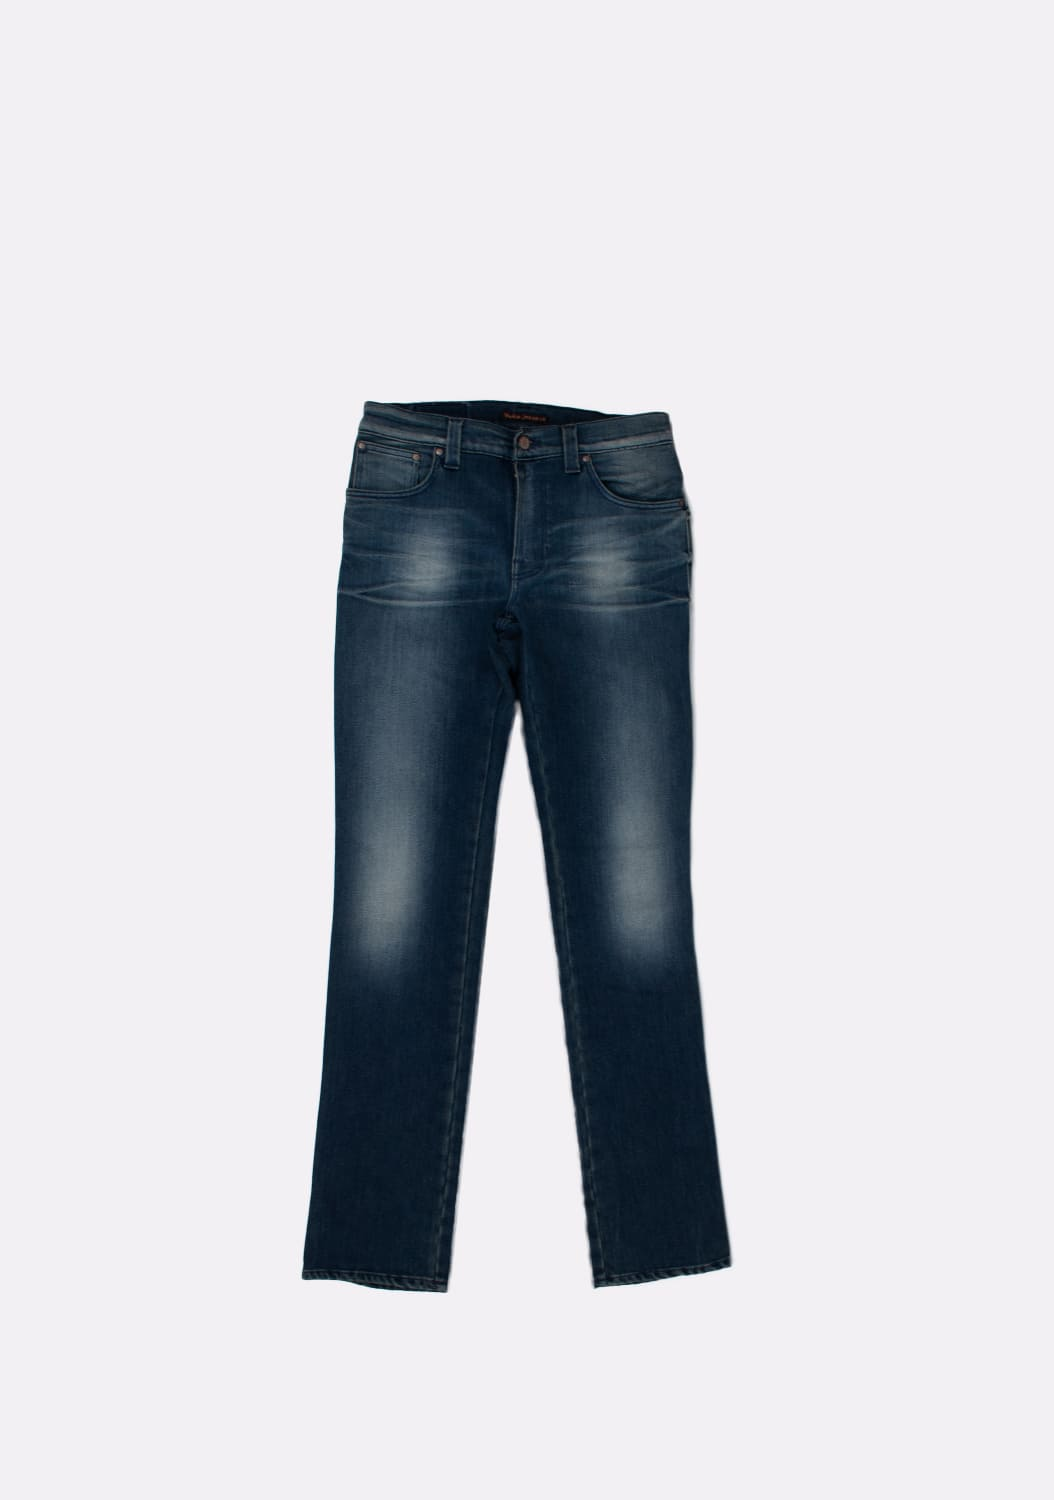 Nudie-Jeans-Slim-Jim-Scraped-melynai-pilki-Straight-dzinsai-dydis-32-34 (2)